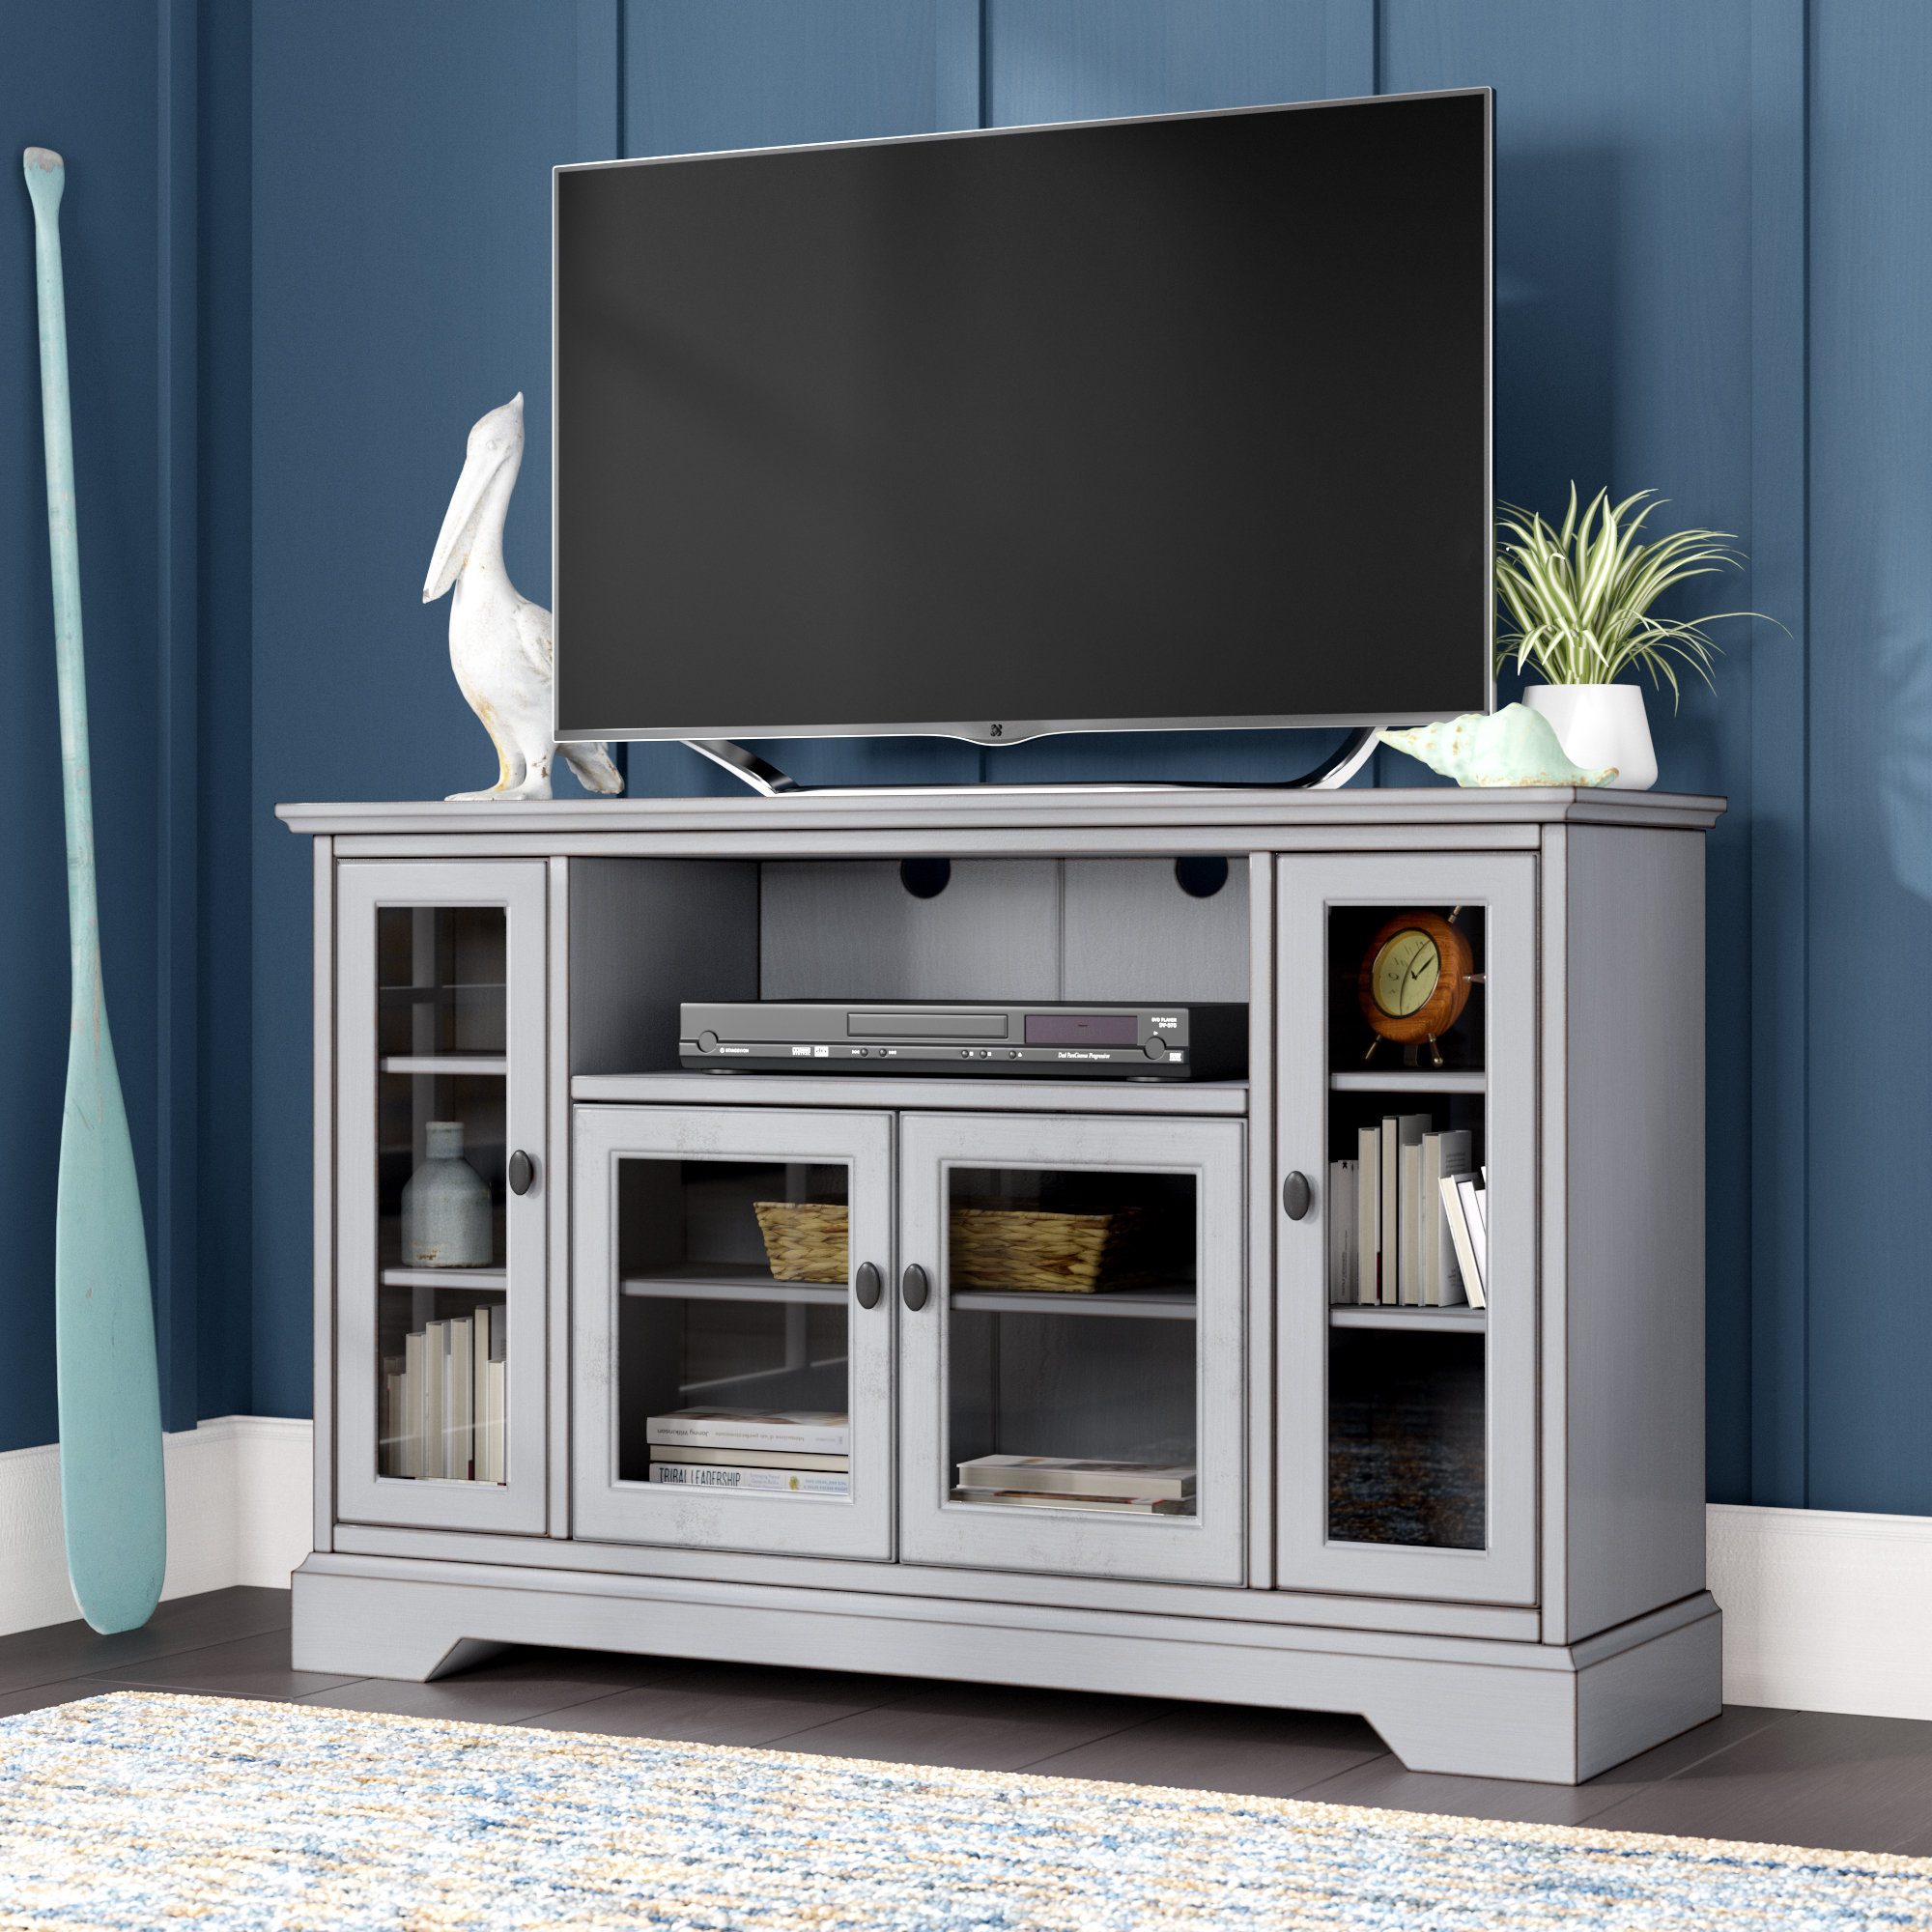 Tv Stands & Entertainment Centers You'll Love   Wayfair Intended For Sinclair Blue 54 Inch Tv Stands (View 29 of 30)